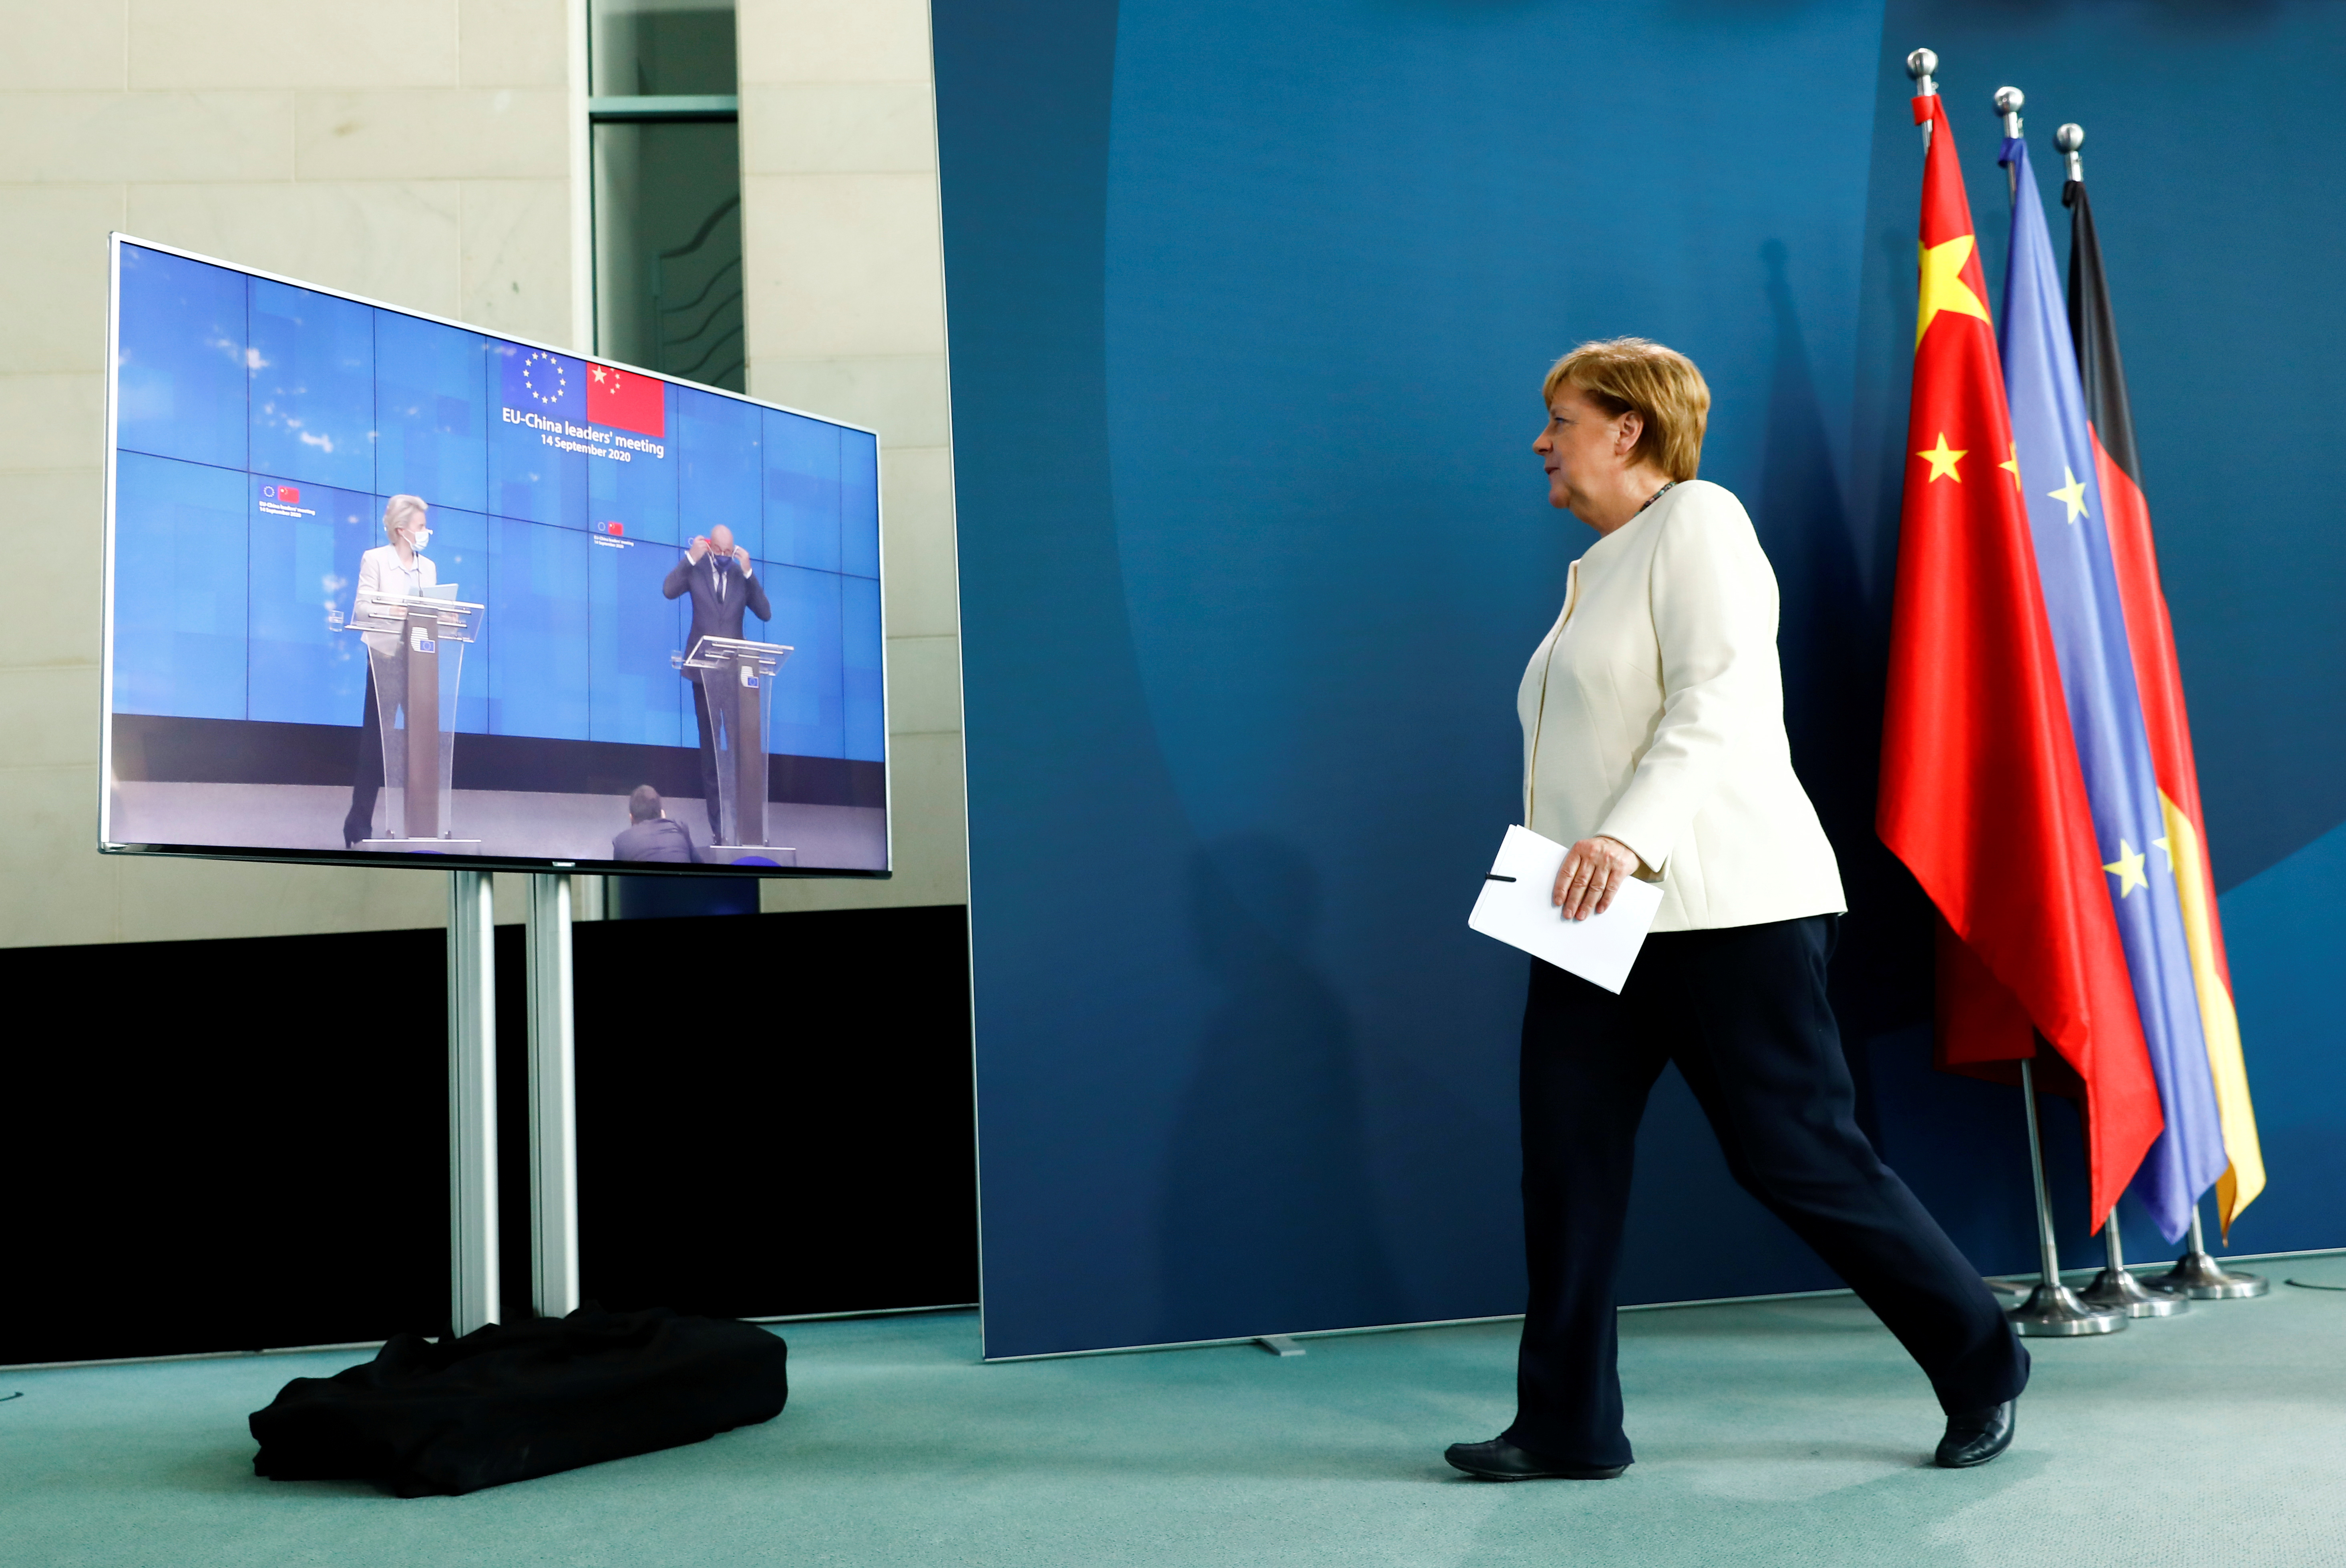 German Chancellor Angela Merkel walks after holding a video news conference with European Council President Charles Michel and European Commission President Ursula von der Leyen following a virtual summit with China's President Xi Jinping, at the Chancellery in Berlin, September 14, 2020. REUTERS/Michele Tantussi/Pool/File Photo